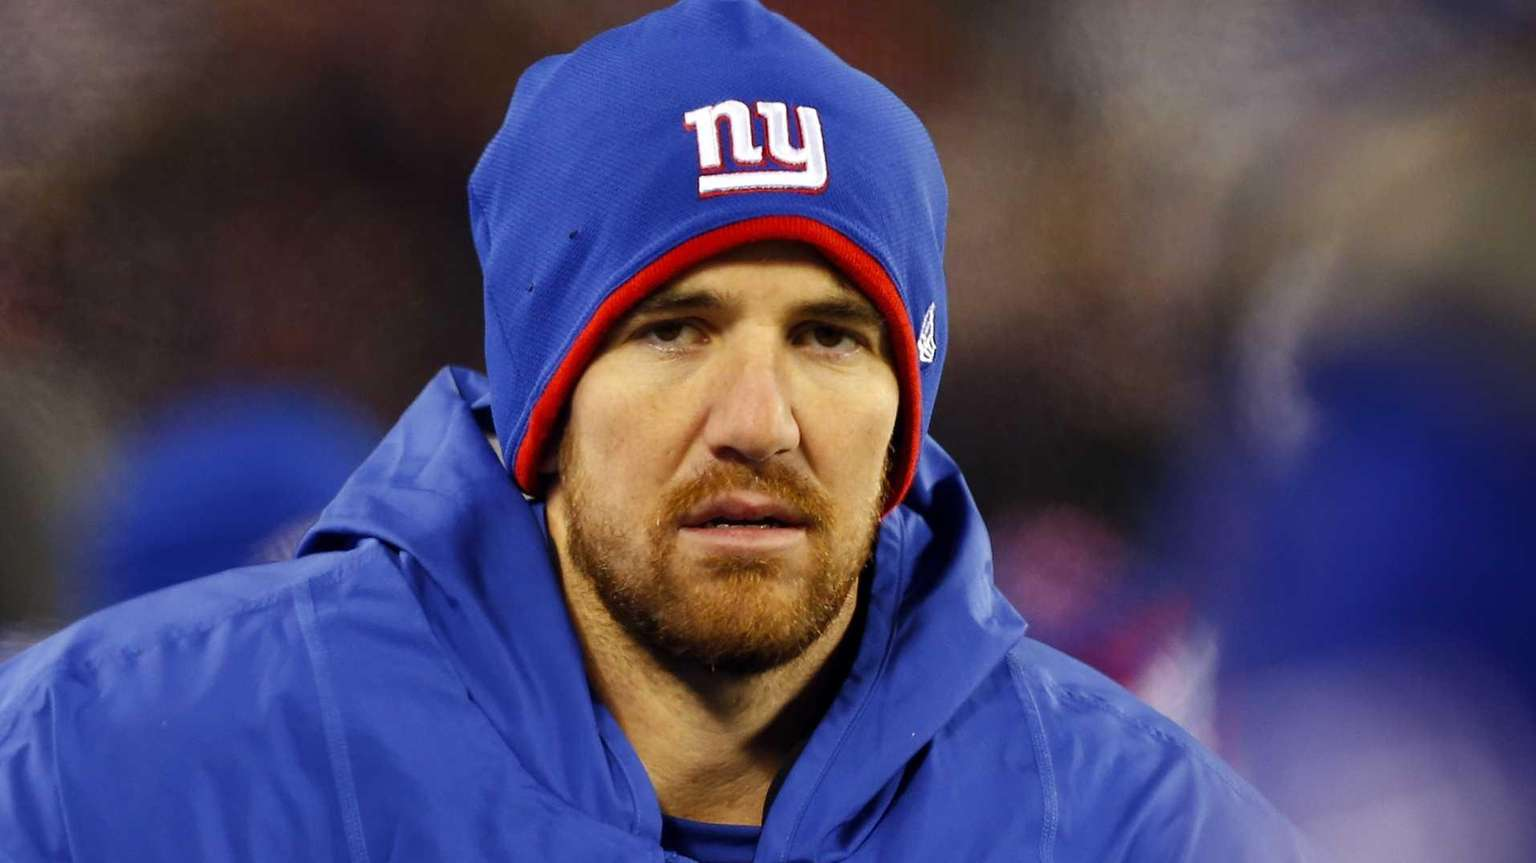 Eli Manning looks on from the bench during